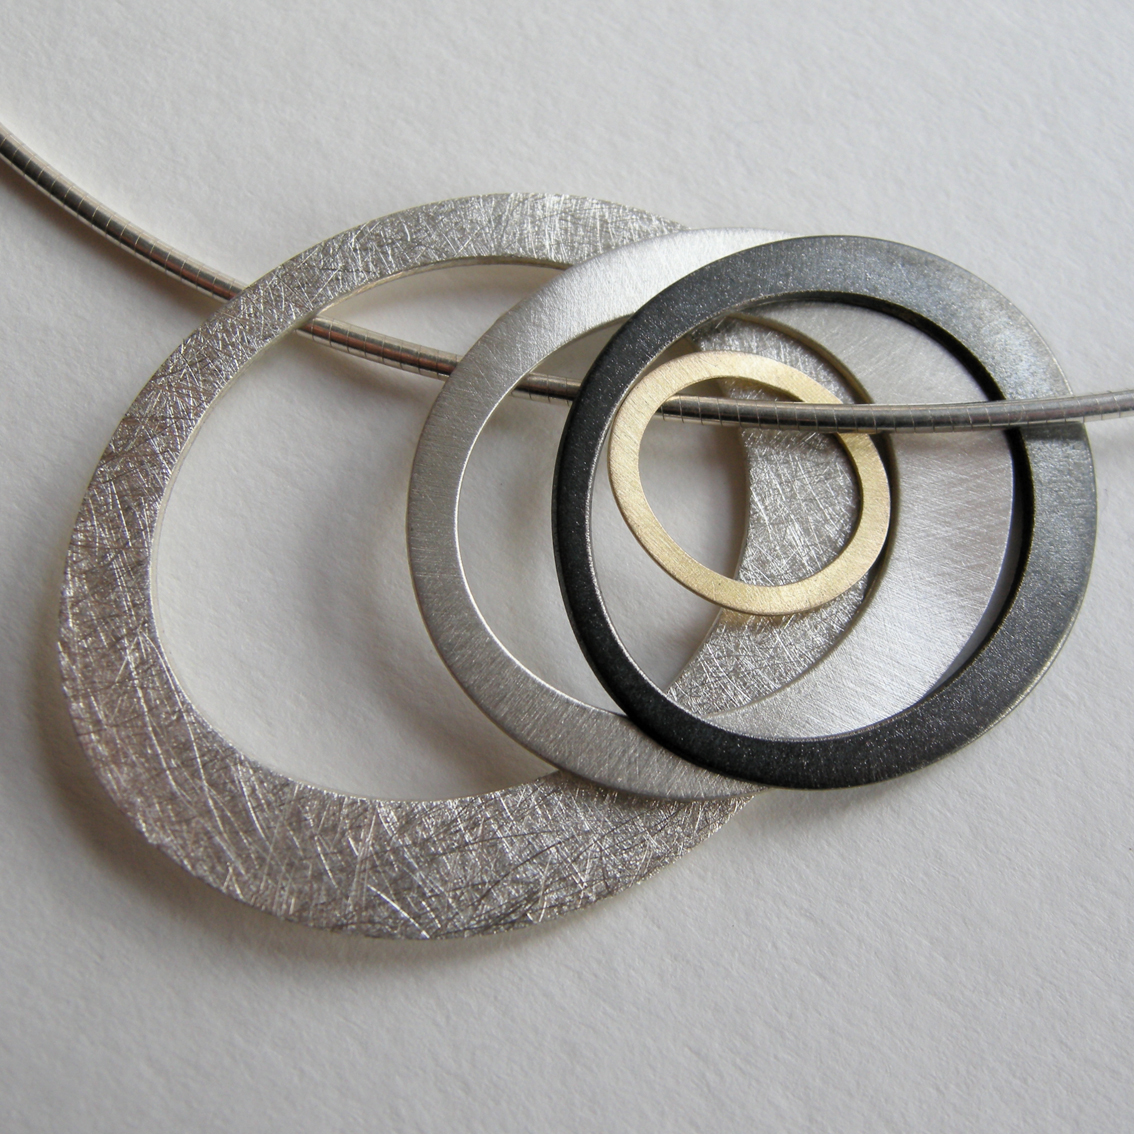 Modern Jewelry Design Ideas: Contemporary Necklaces / Pendants By